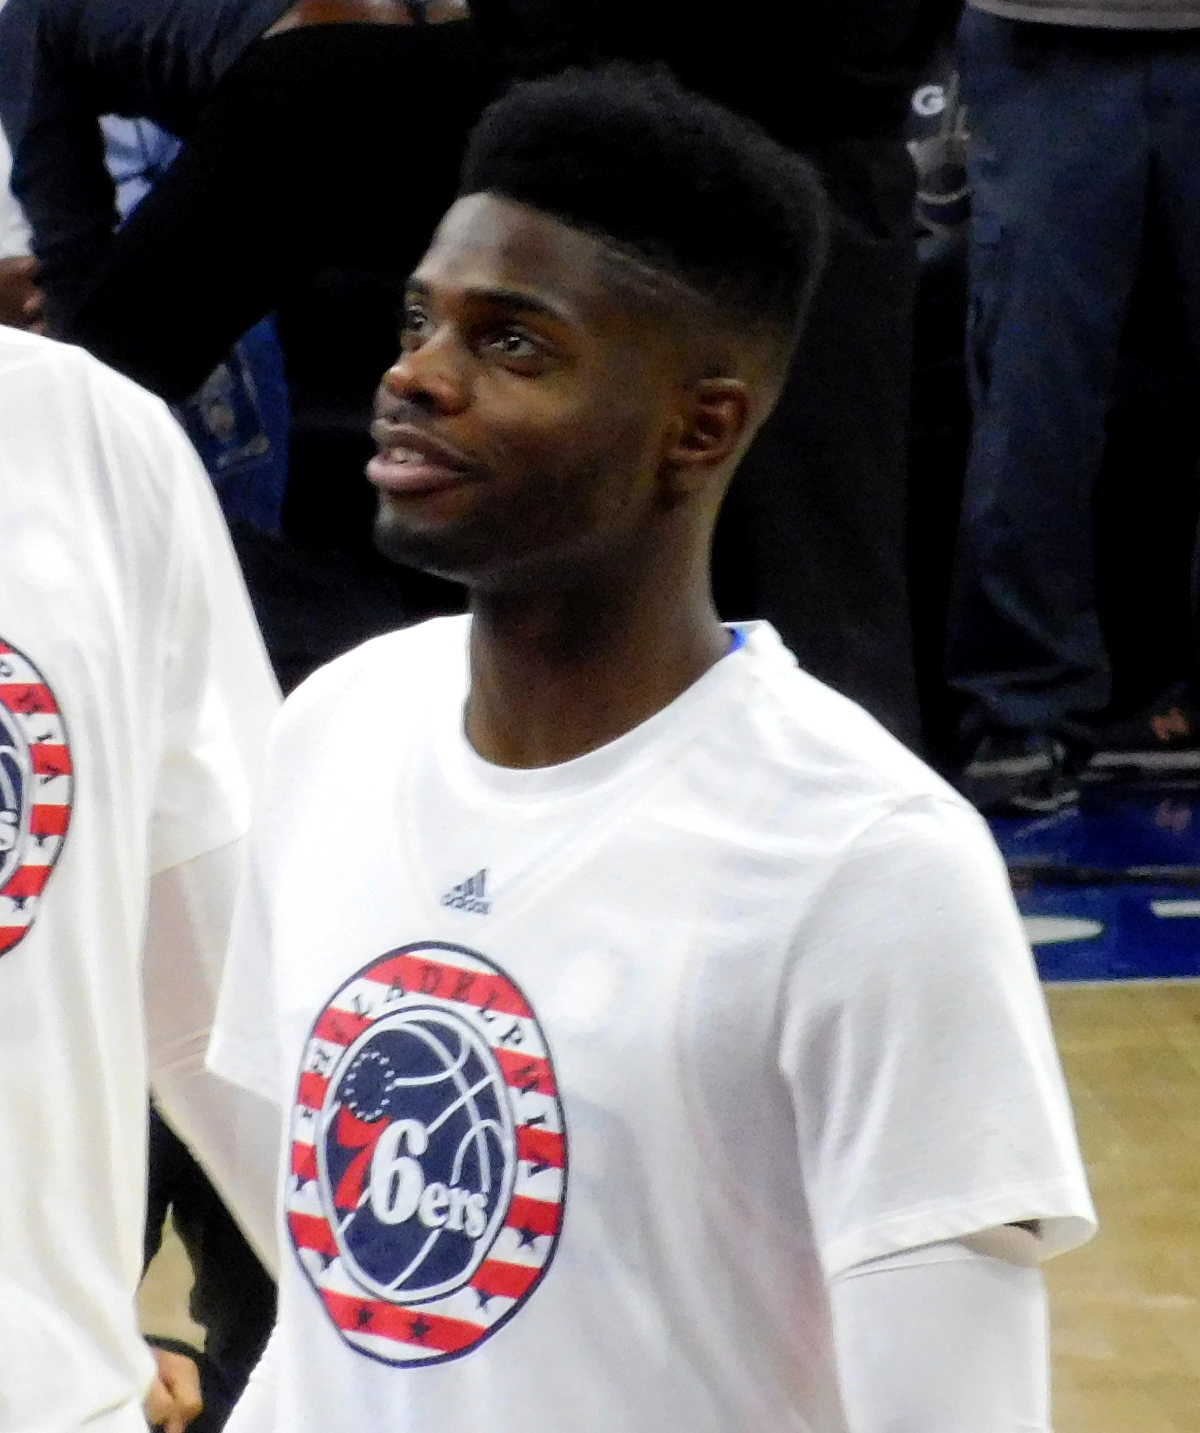 The 24-year old son of father (?) and mother Dorcina Noel Nerlens Noel in 2018 photo. Nerlens Noel earned a  million dollar salary - leaving the net worth at 18 million in 2018